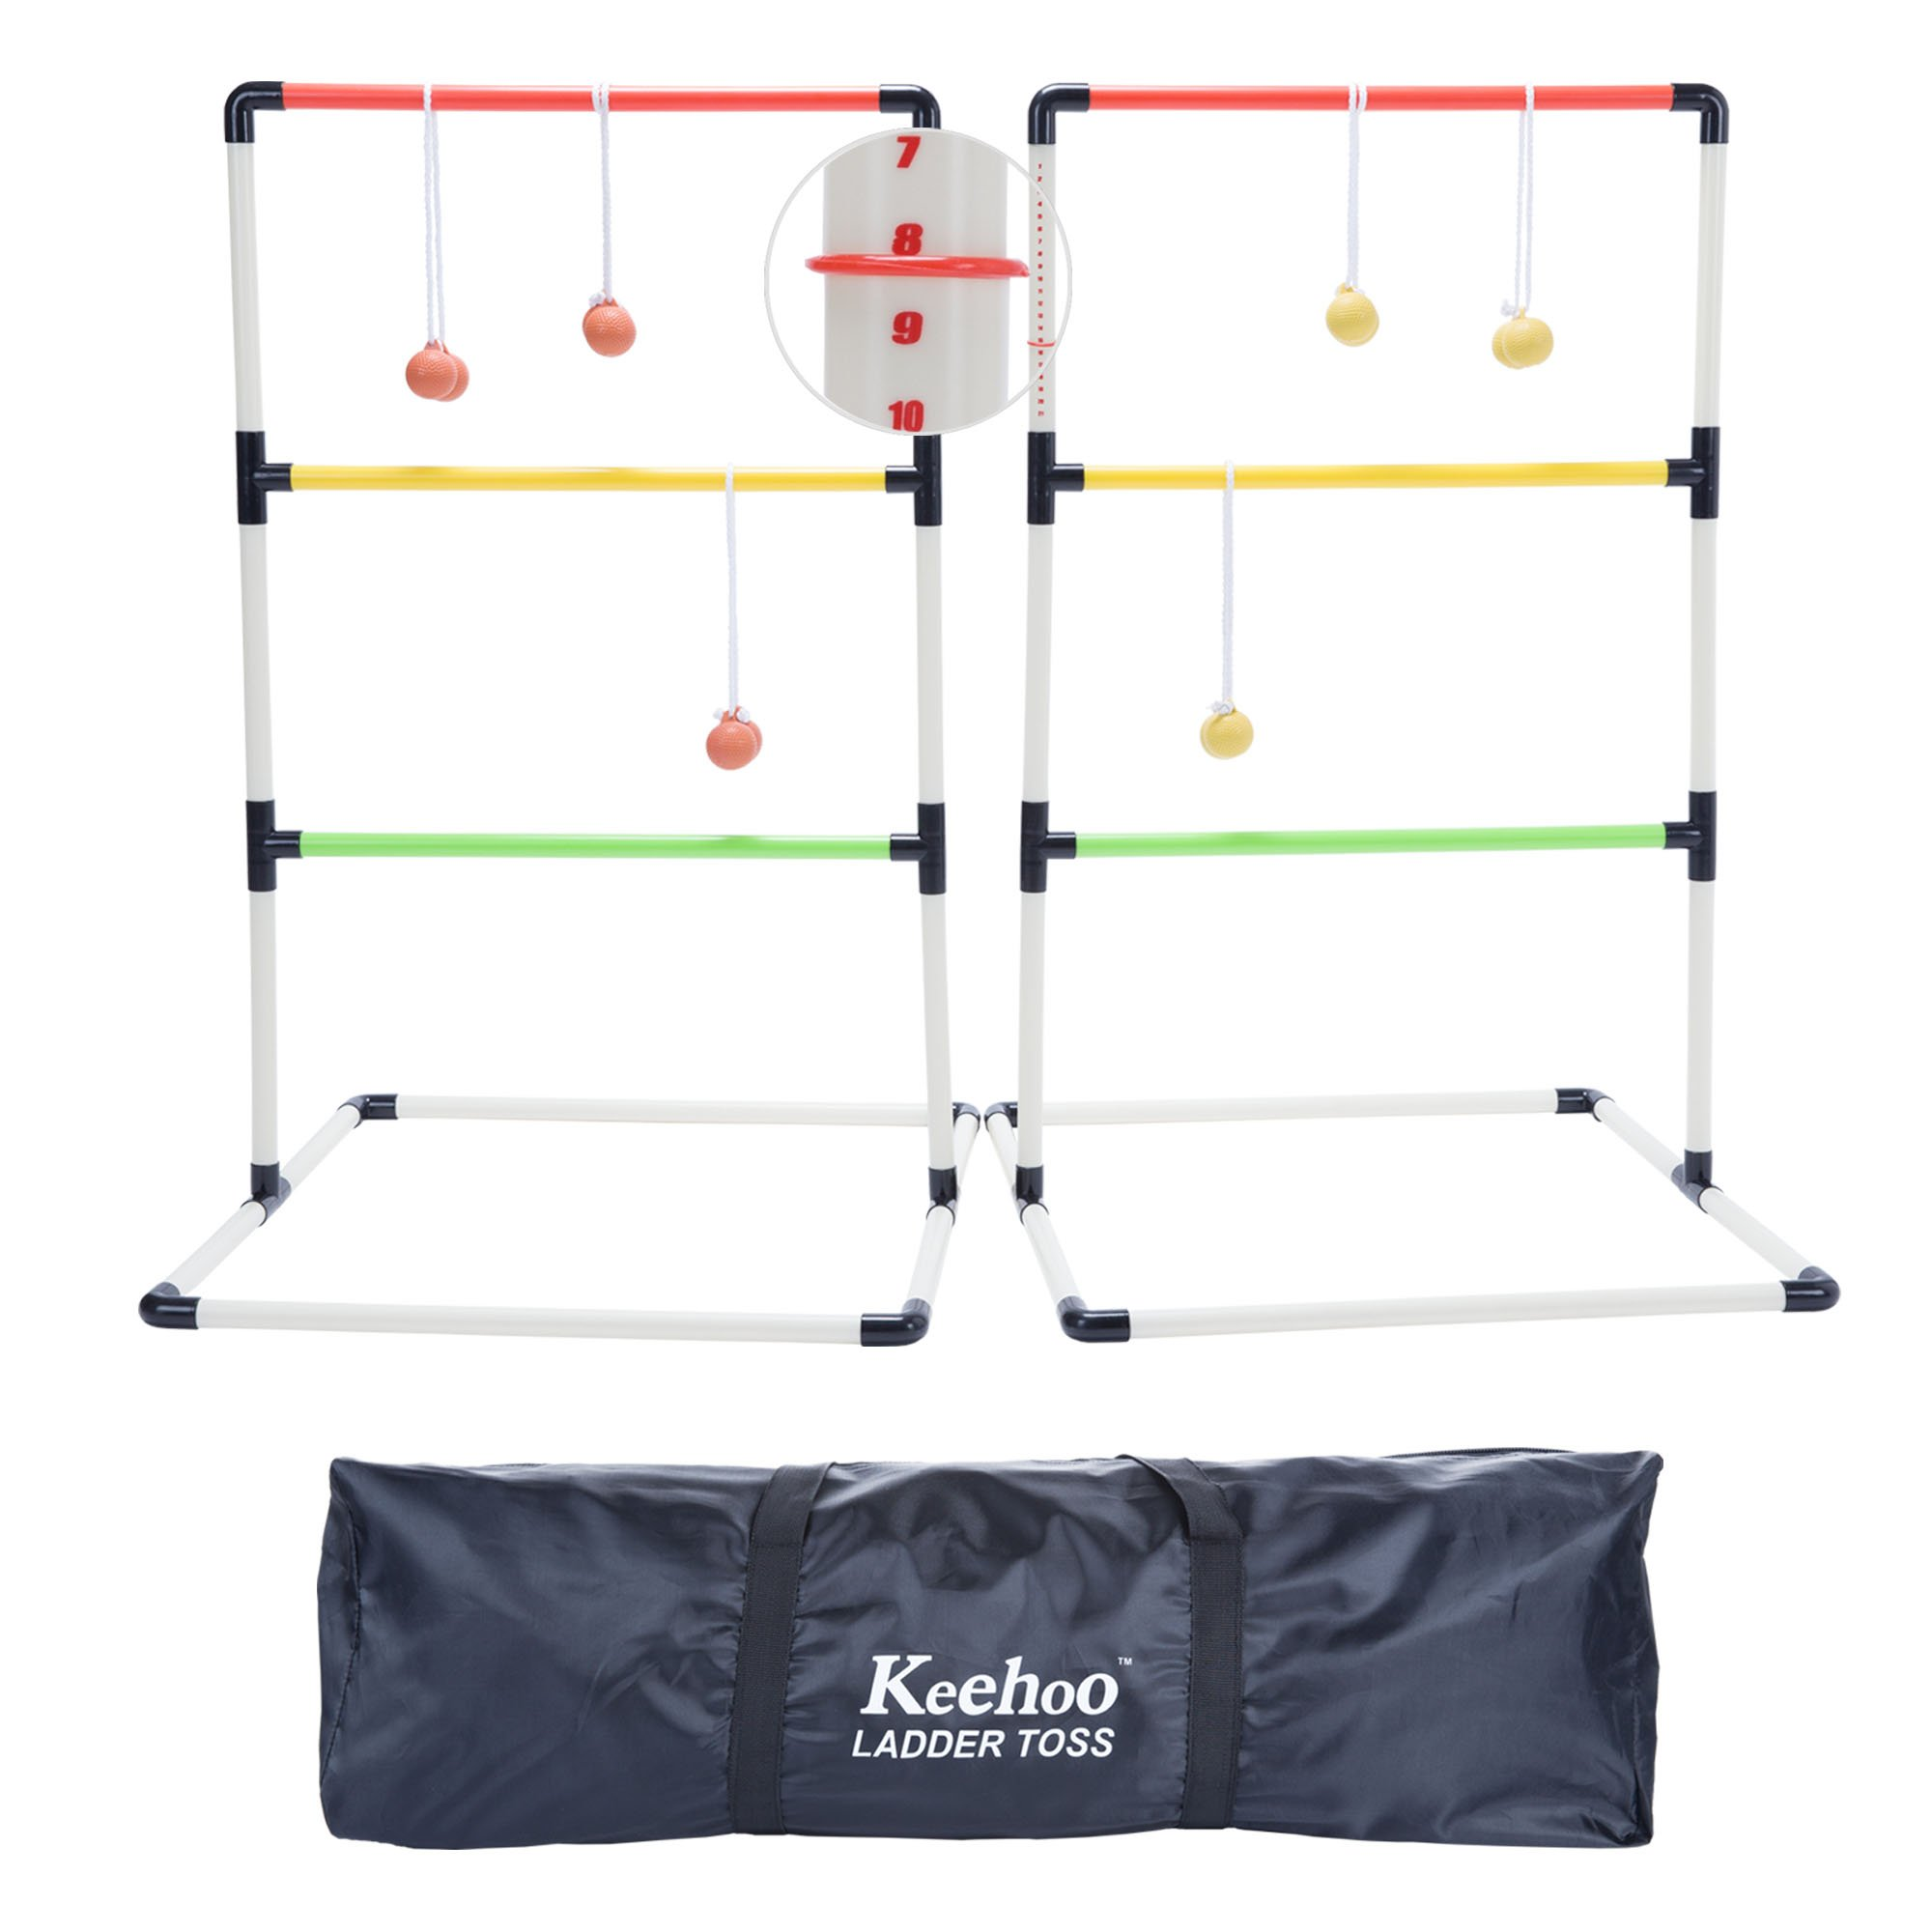 KH Yard Ladder Ball Toss Game for Adults and Family with 6 Bolos, Score Trackers and Waterproof Carry Bag by Keehoo